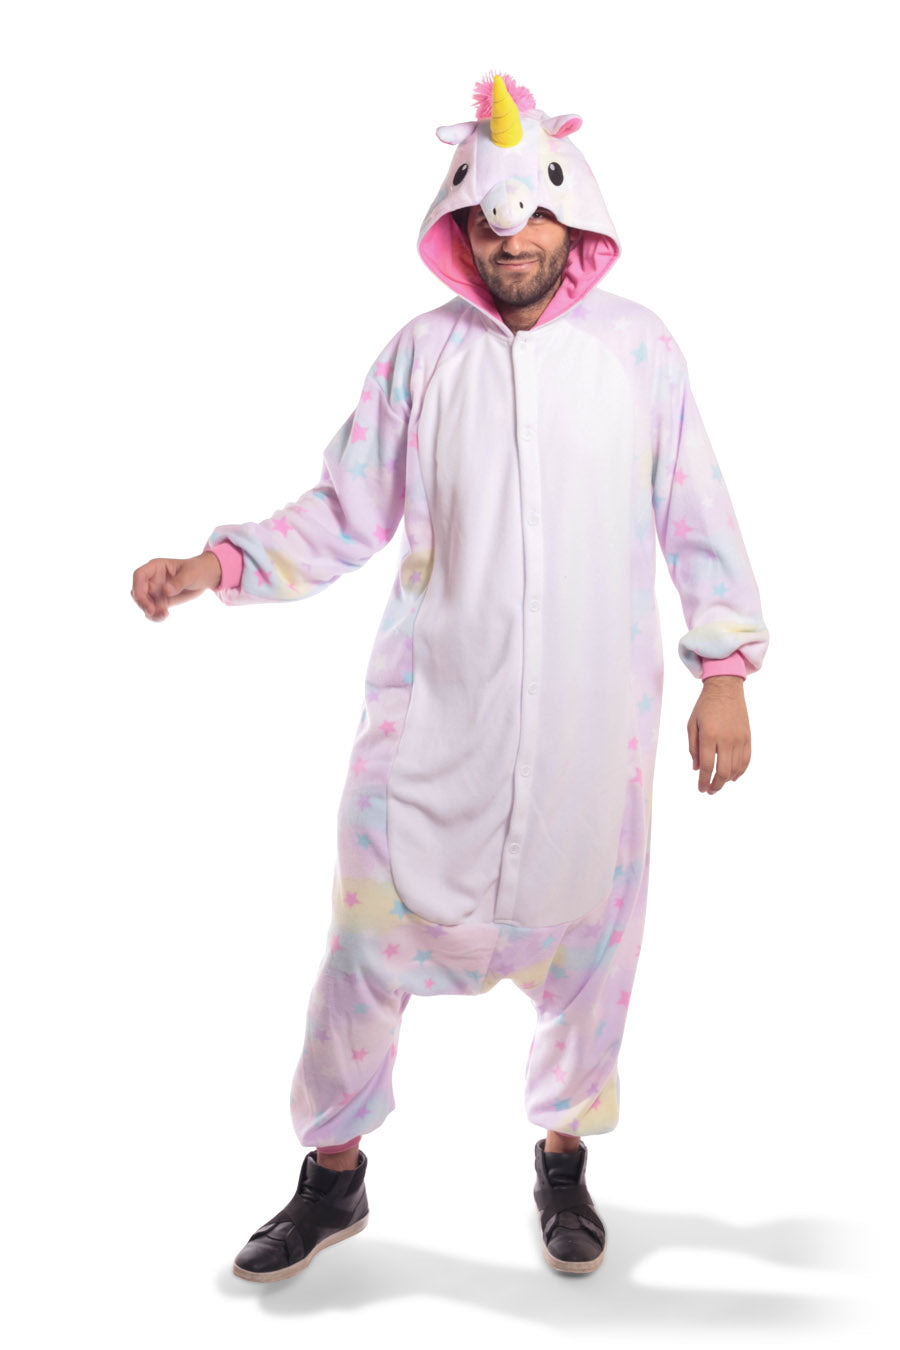 Pastel Dream Unicorn X-Tall Animal Kigurumi Adult Onesie Costume Pajamas Purple Stars Front Main